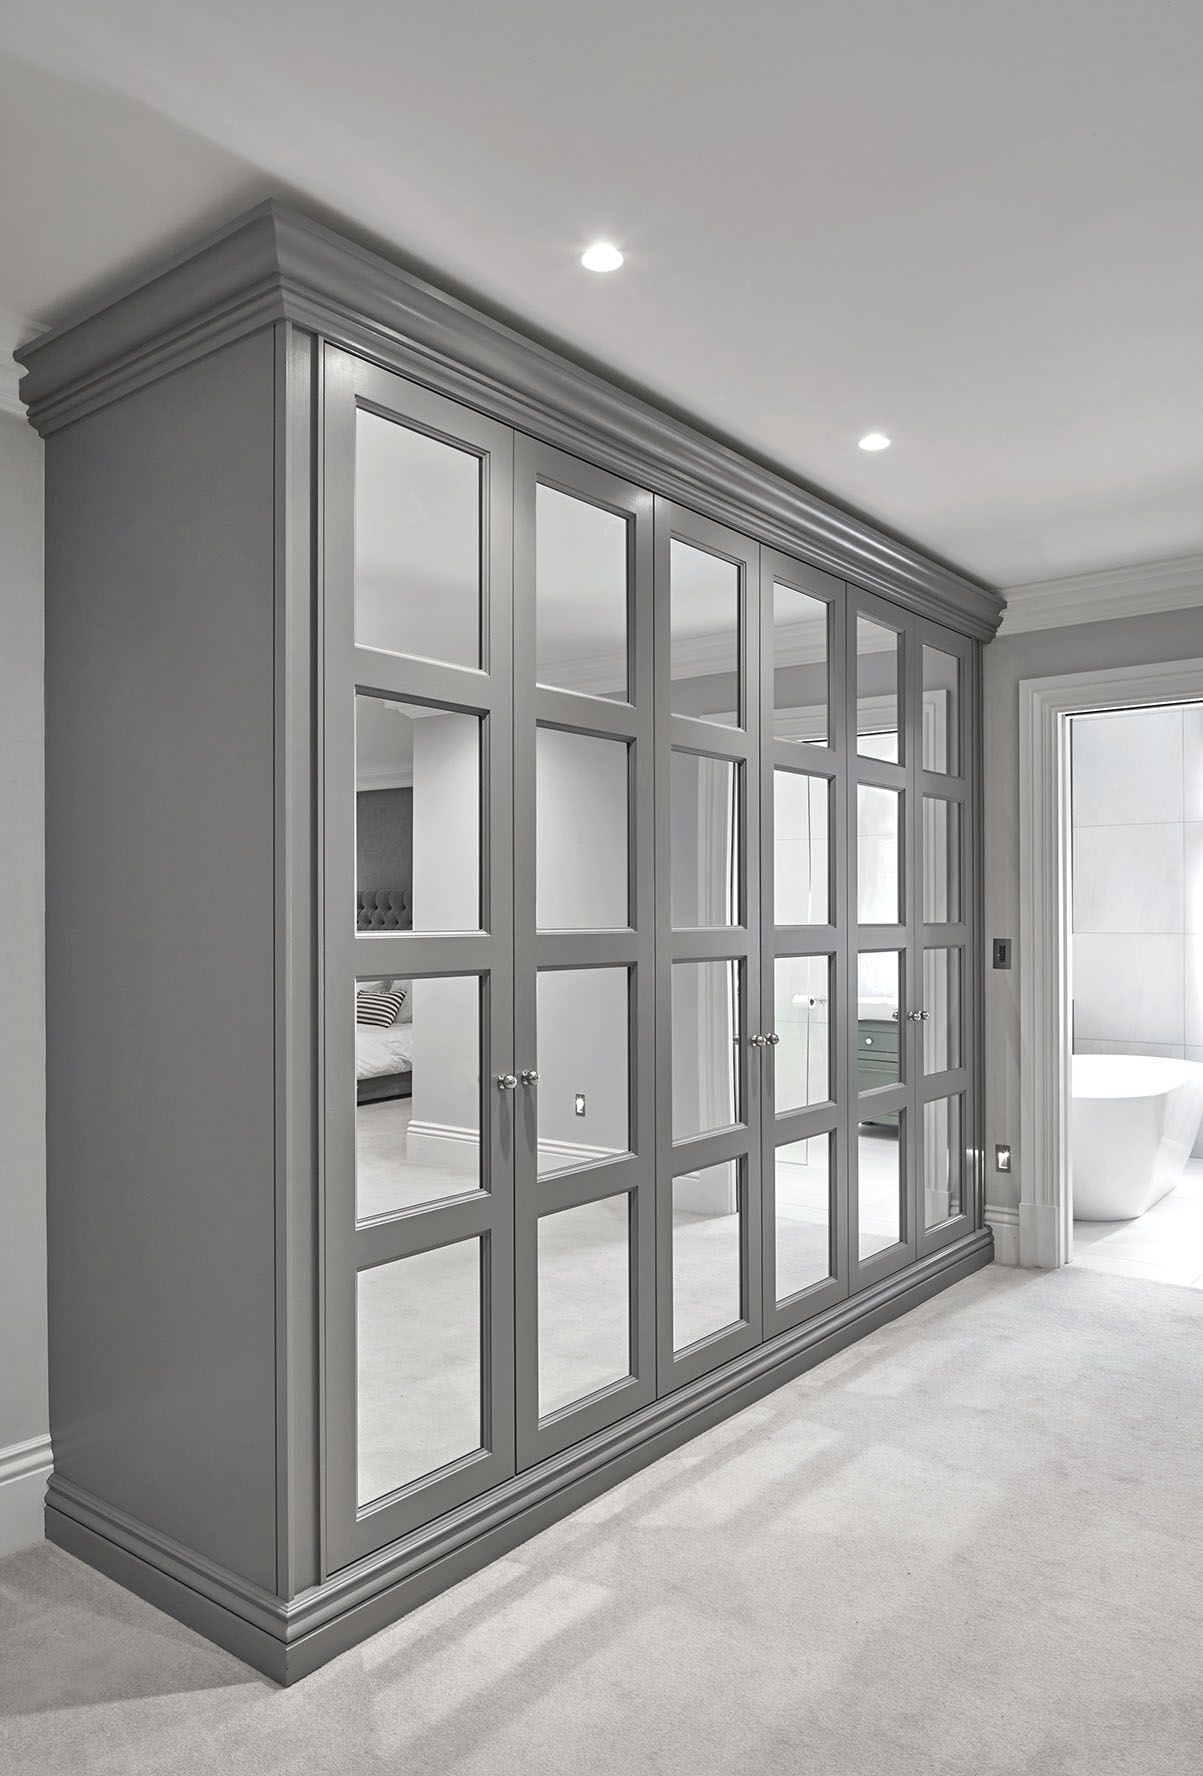 Fulham london the heritage wardrobe company kapak model pinterest fulham wardrobes for Built in wardrobes in bedroom